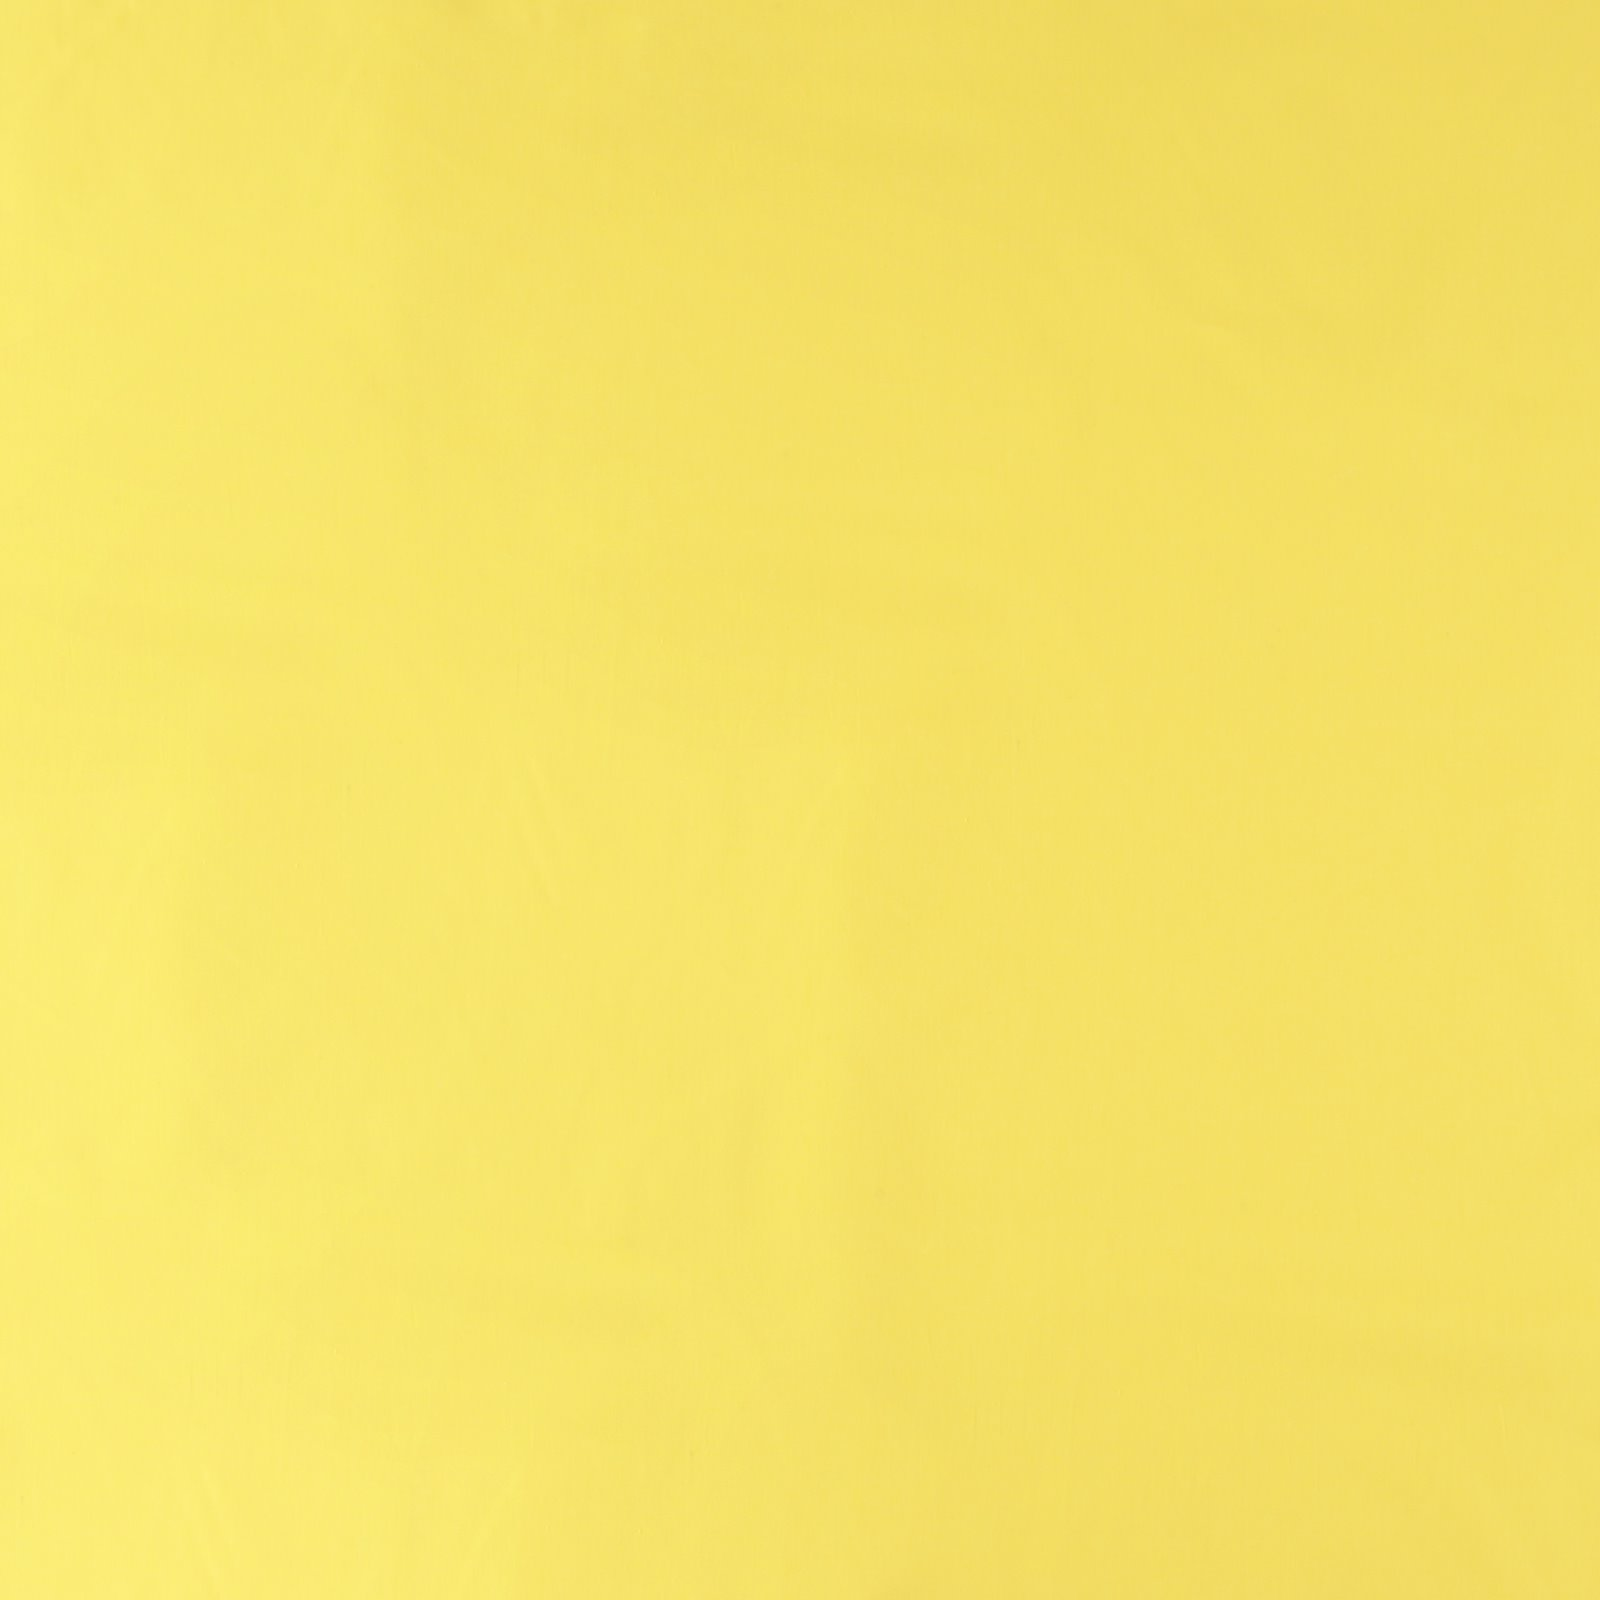 Plain cotton bright yellow 842291_pack_solid